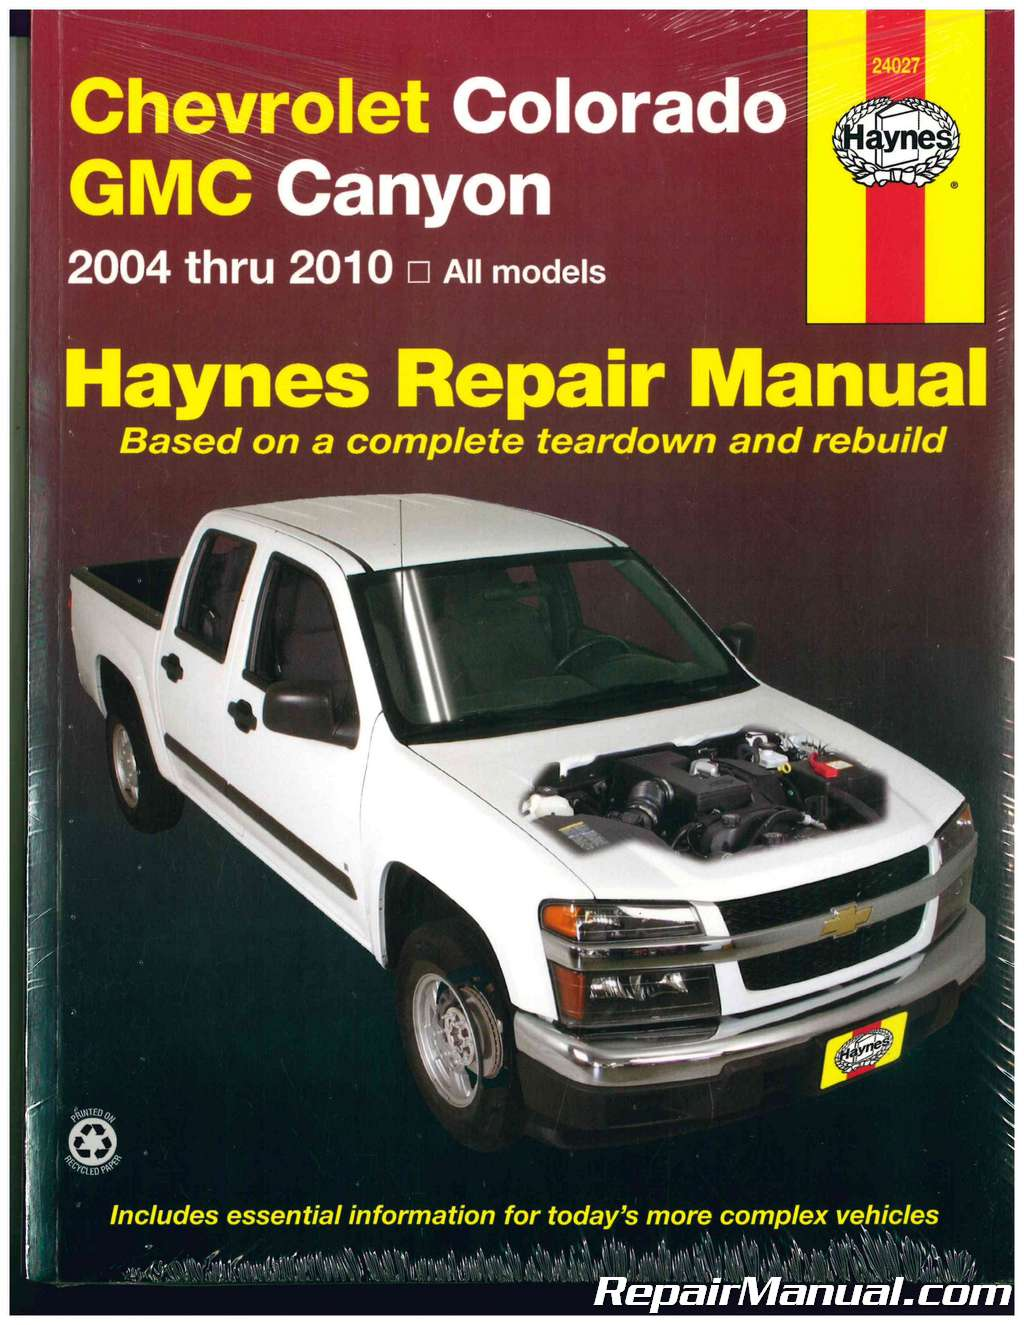 Haynes Chevrolet Colorado GMC Canyon 2004 – 2010 Auto Repair Manual